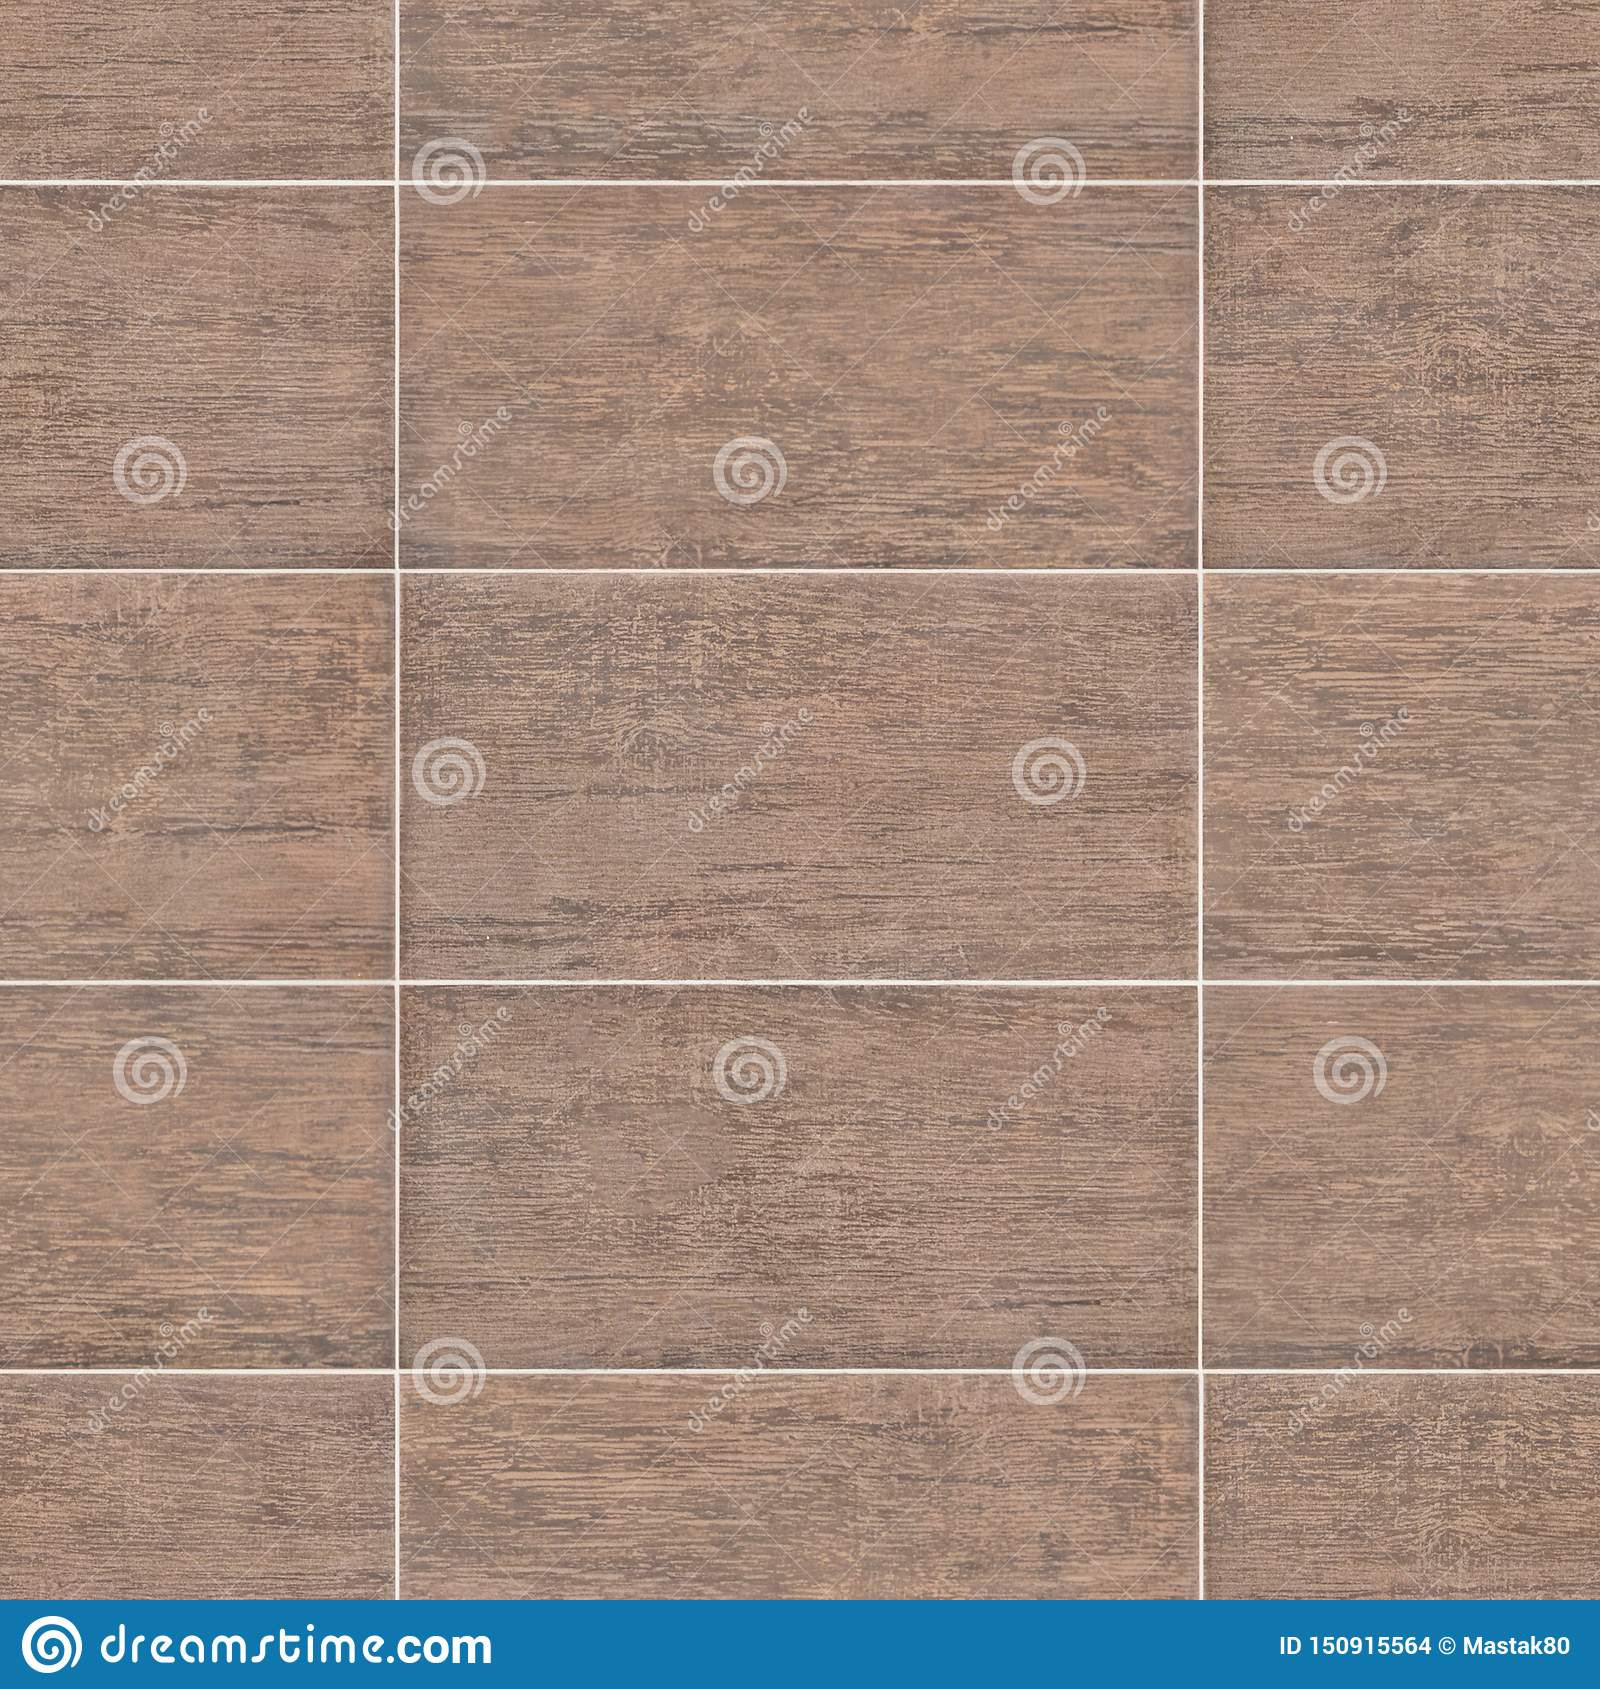 Bathroom Tiles Are Made In Brown Colors Background Or